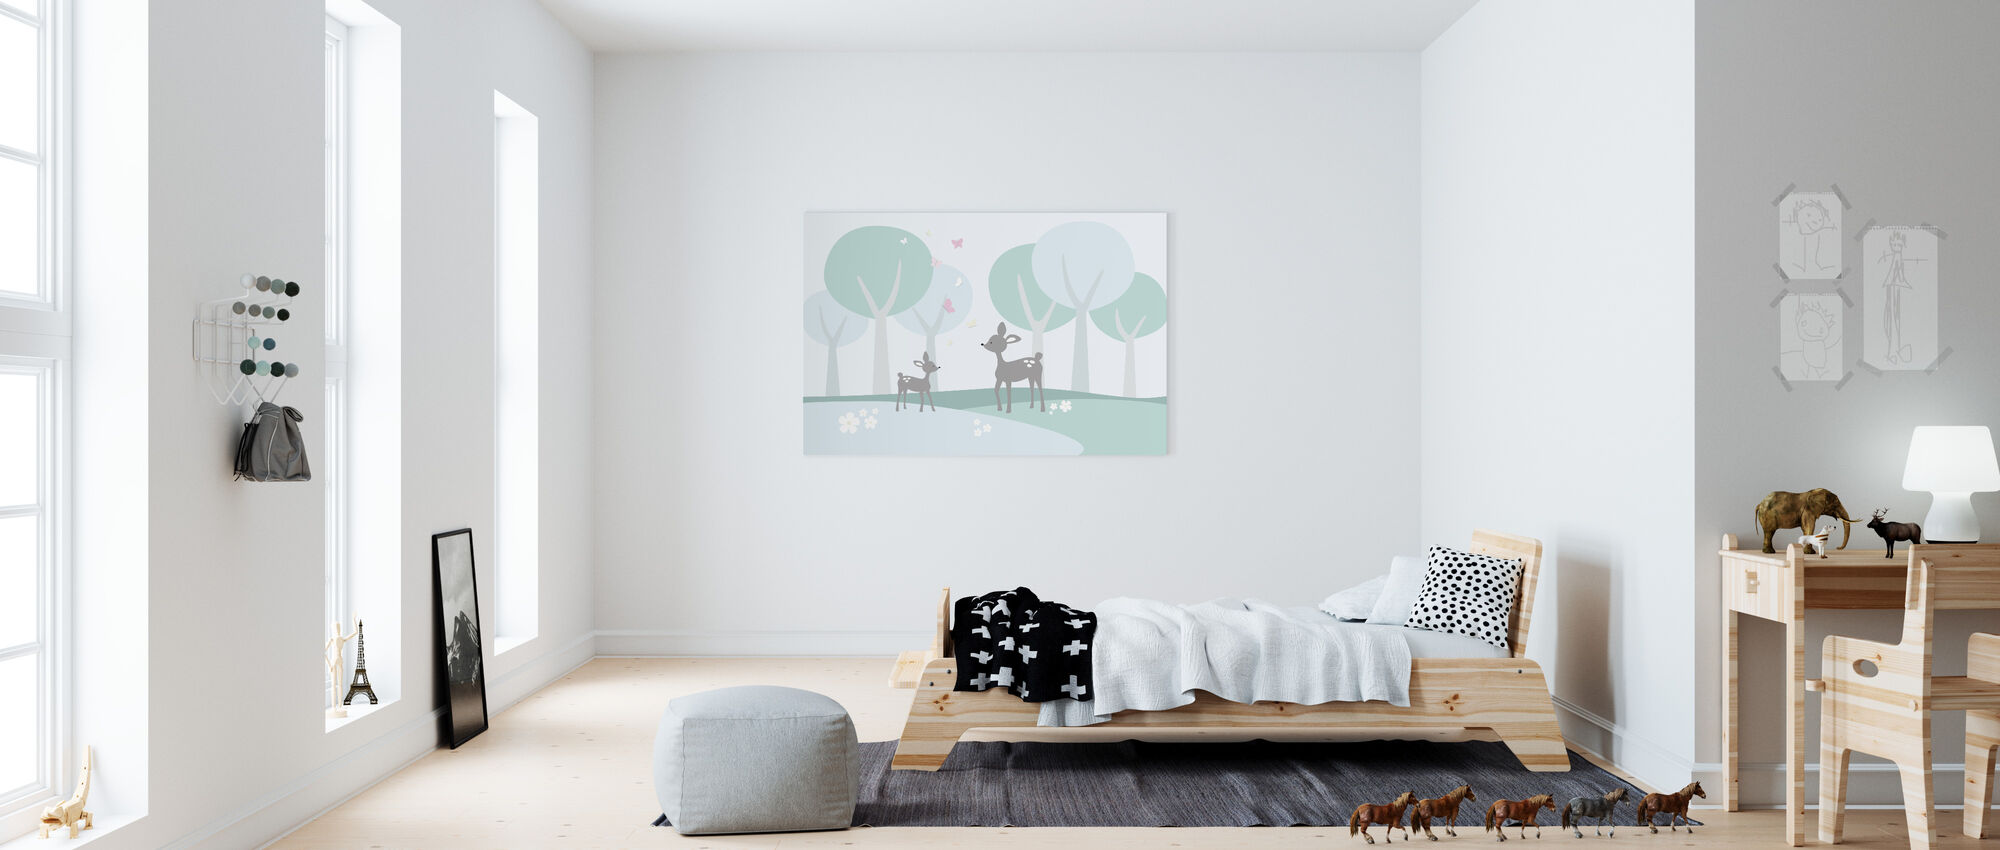 Deer in Woods - Canvas print - Kids Room